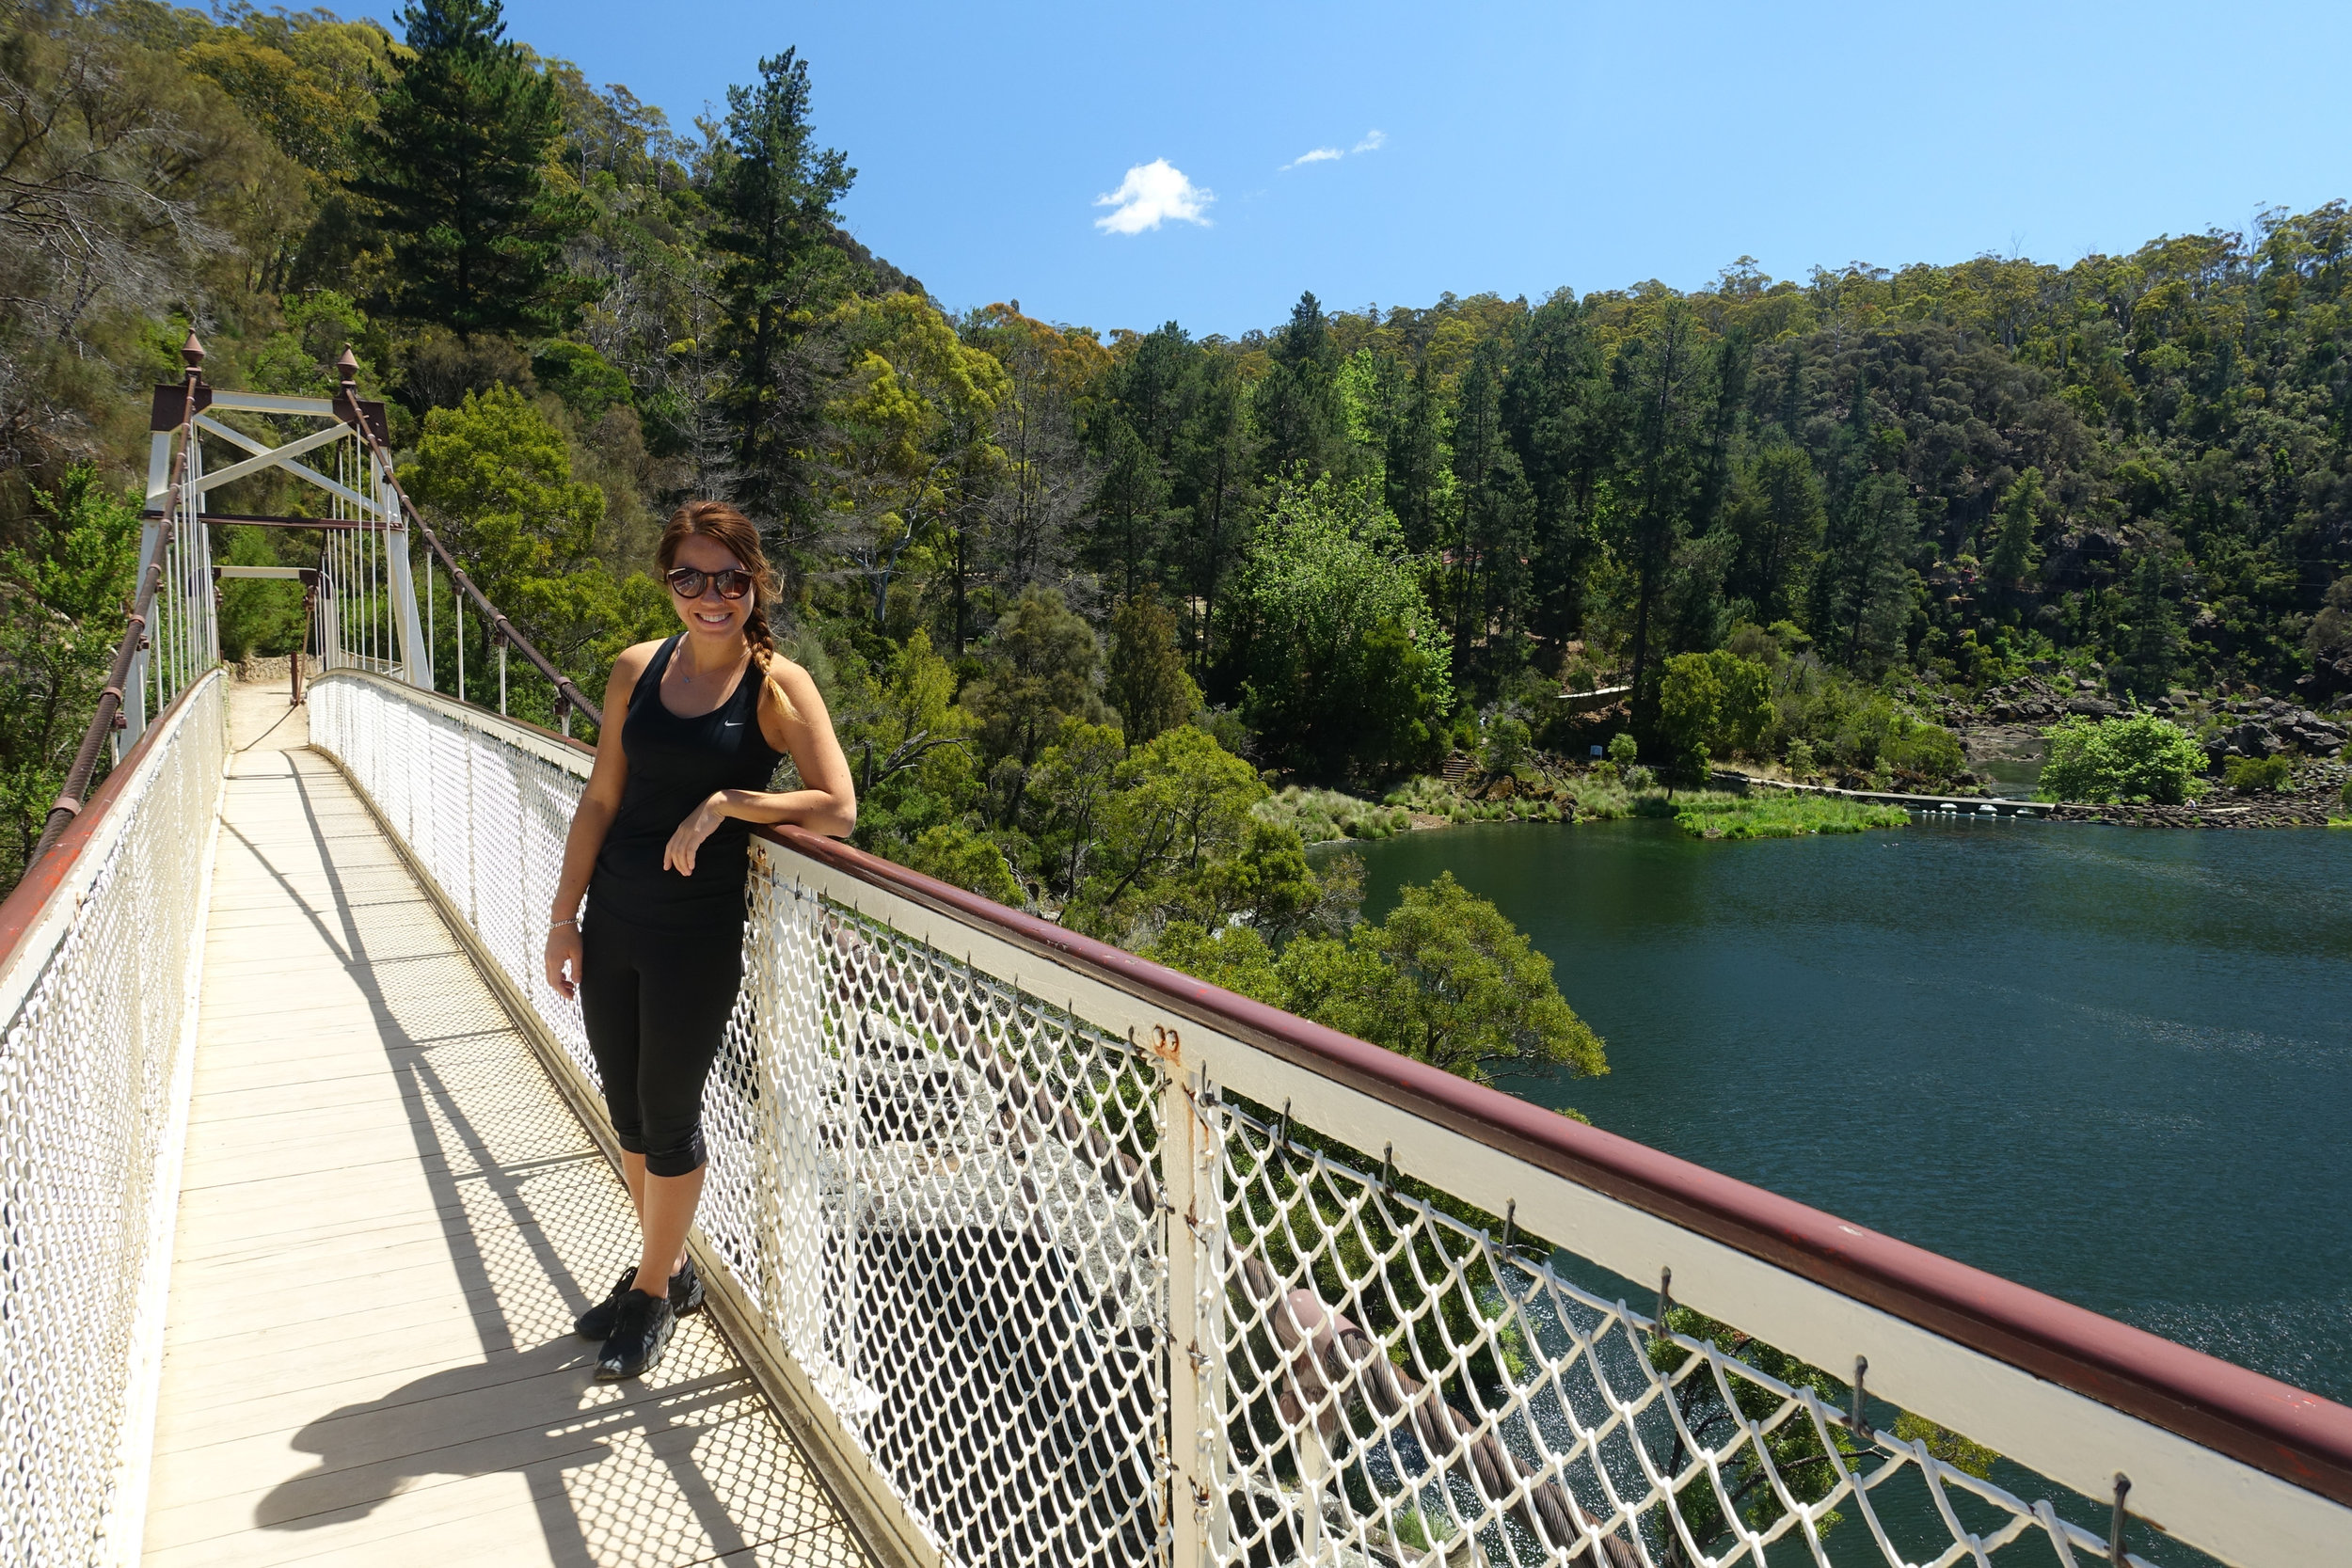 1.)Launceston - Launceston has a good selection of outdoors stores, where you can pick up any last minute camping essentials. Don't forget to check out the Cataract Gorge. You can even enjoy a dip, if the weather permits.